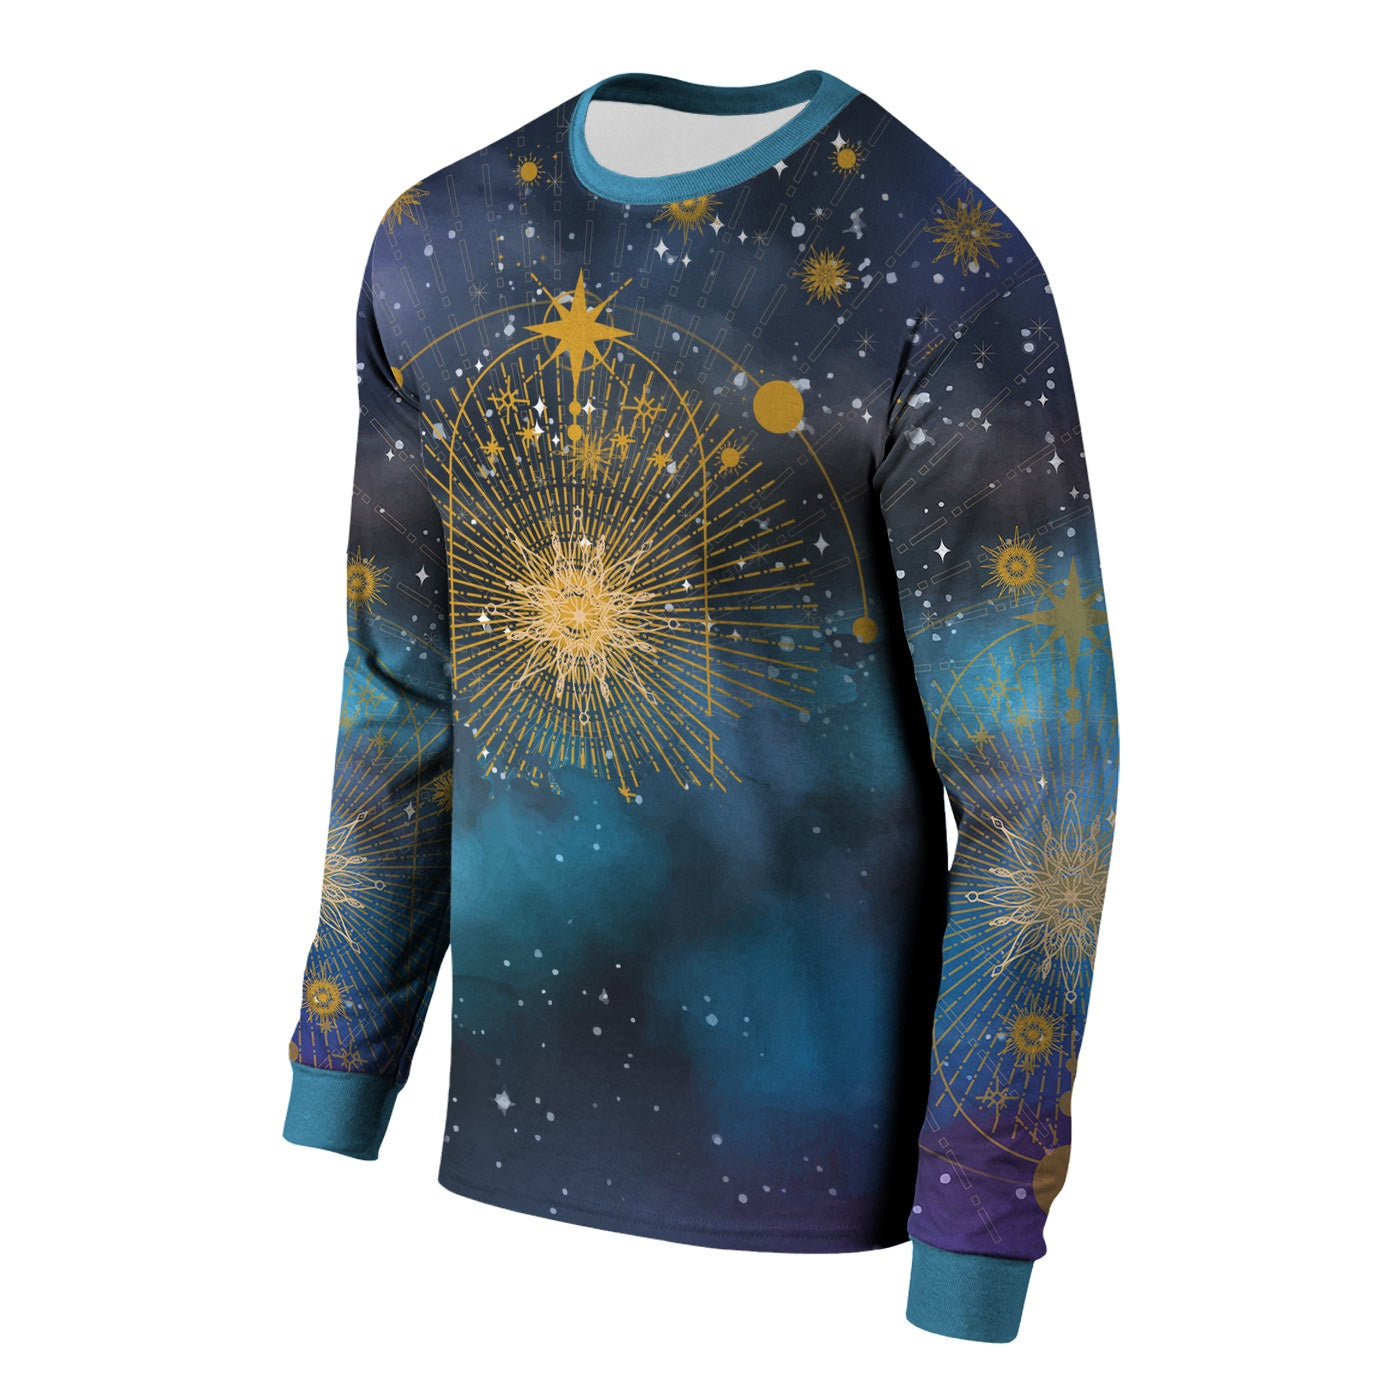 Morning Star Long Sleeve Shirt